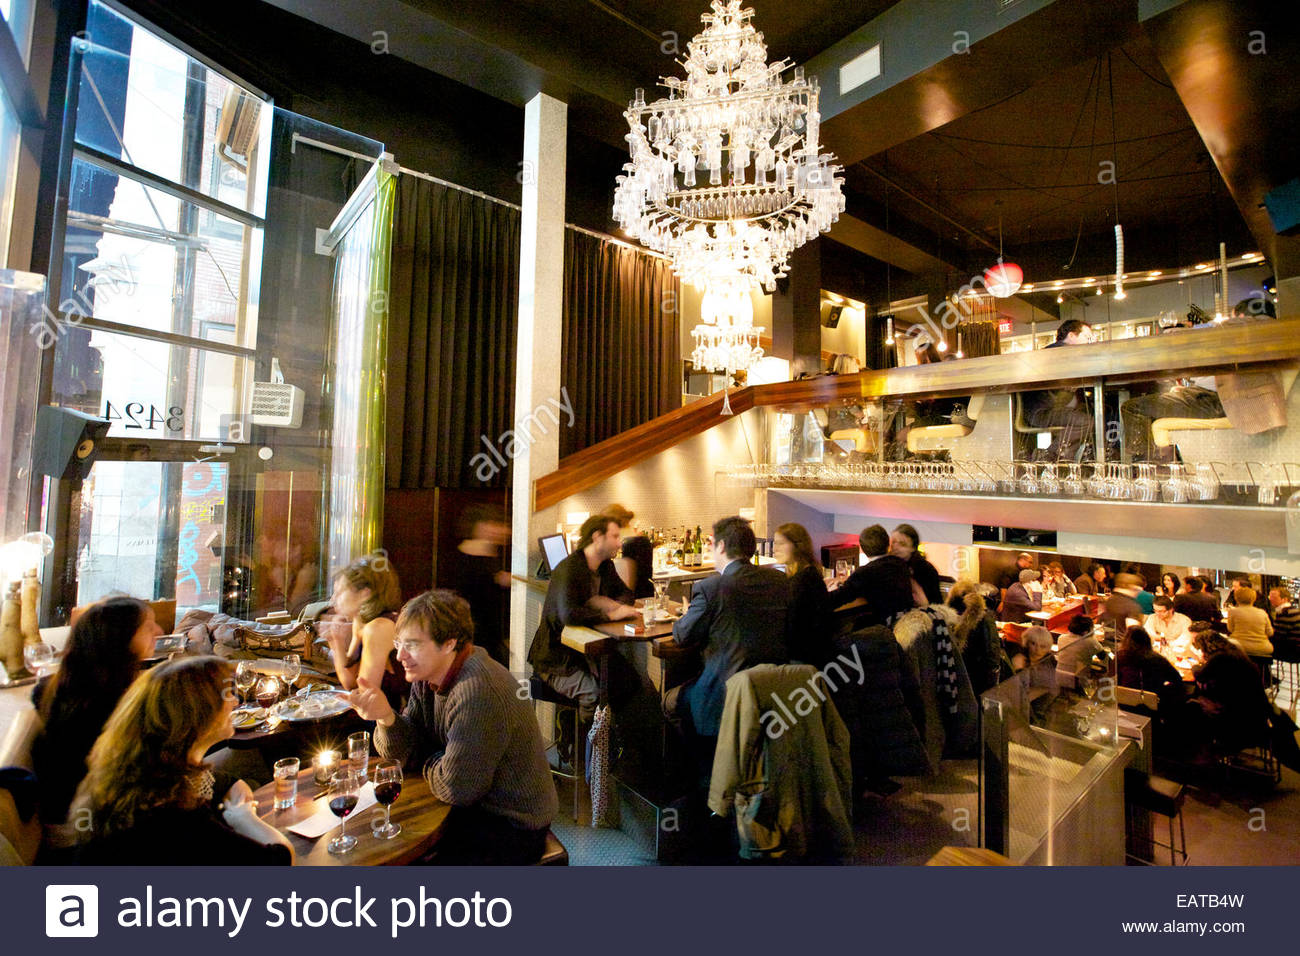 Wine serves as the leitmotif at handsomely lit 'Pullman'. - Stock Image